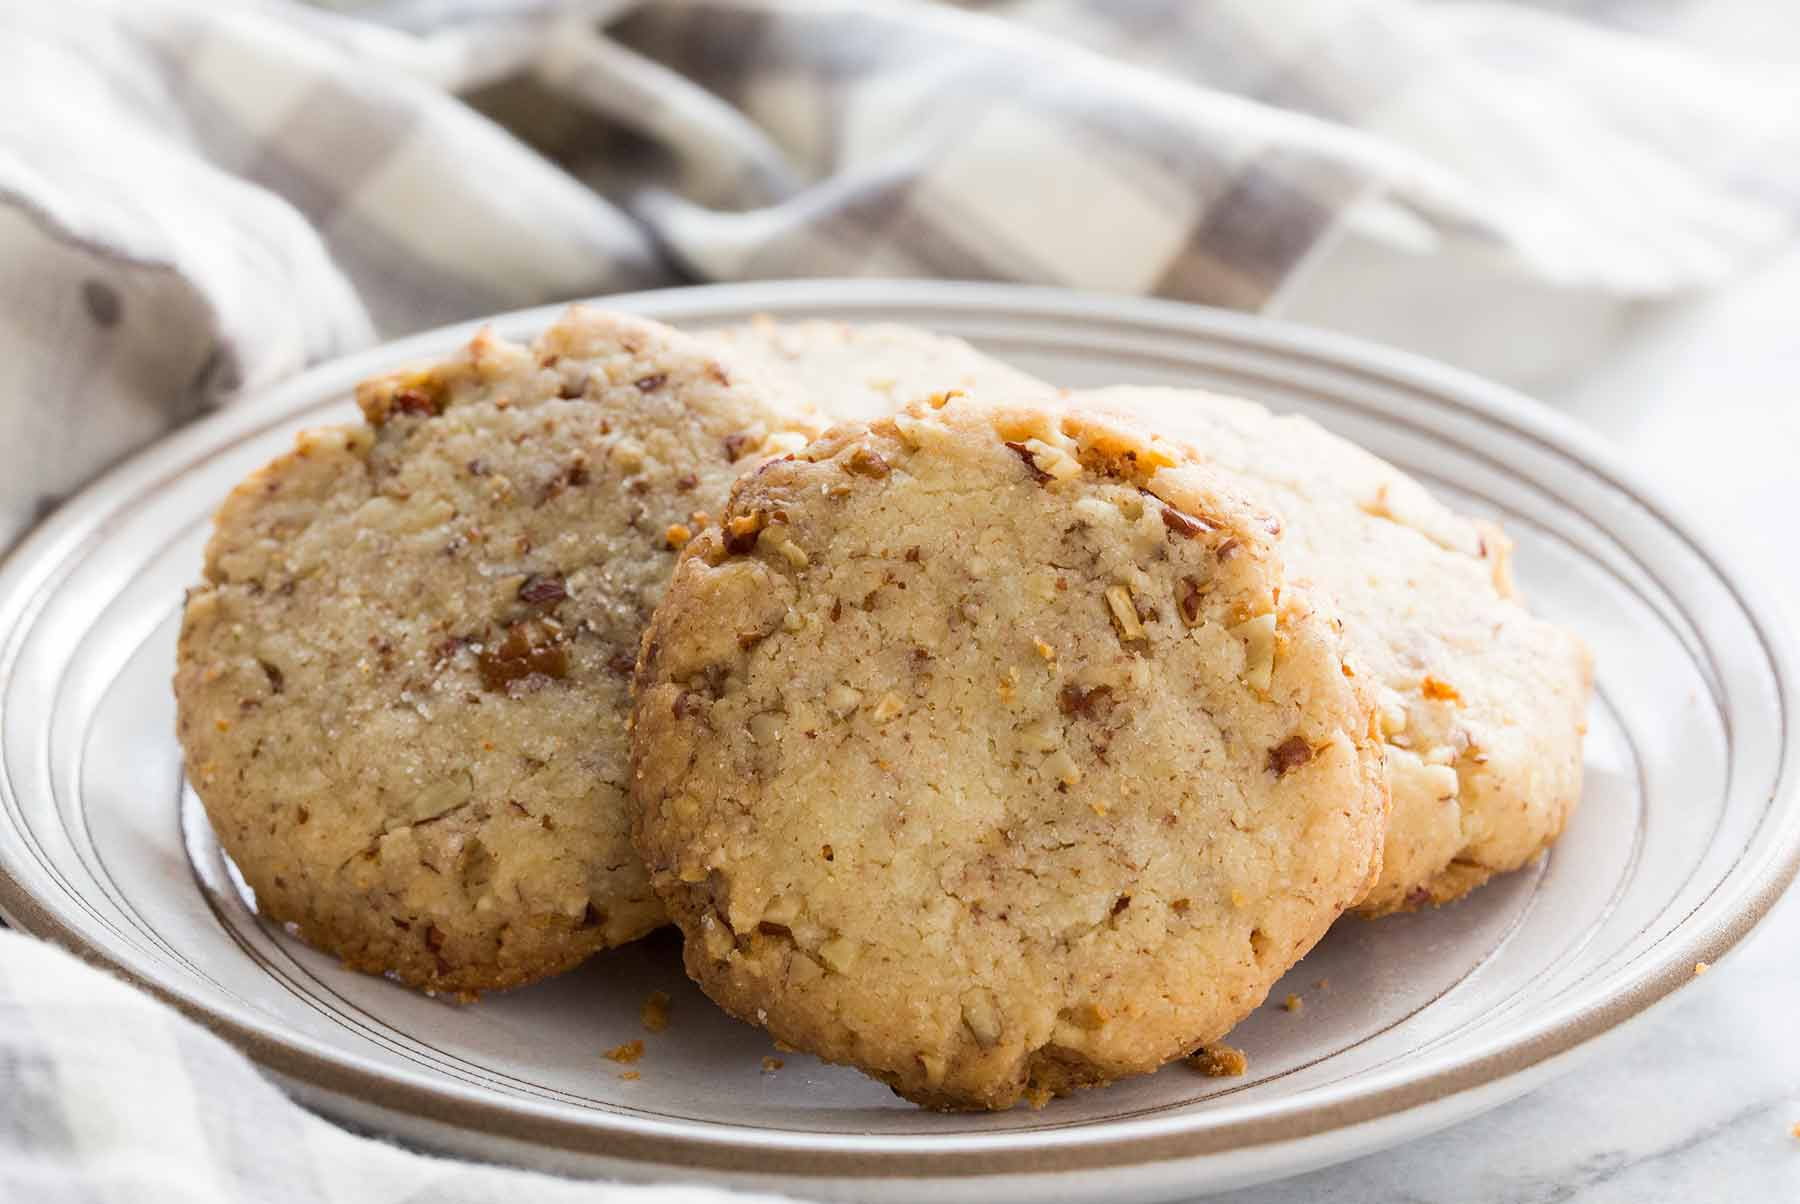 Butter Pecan Cookies Recipe served on a plate